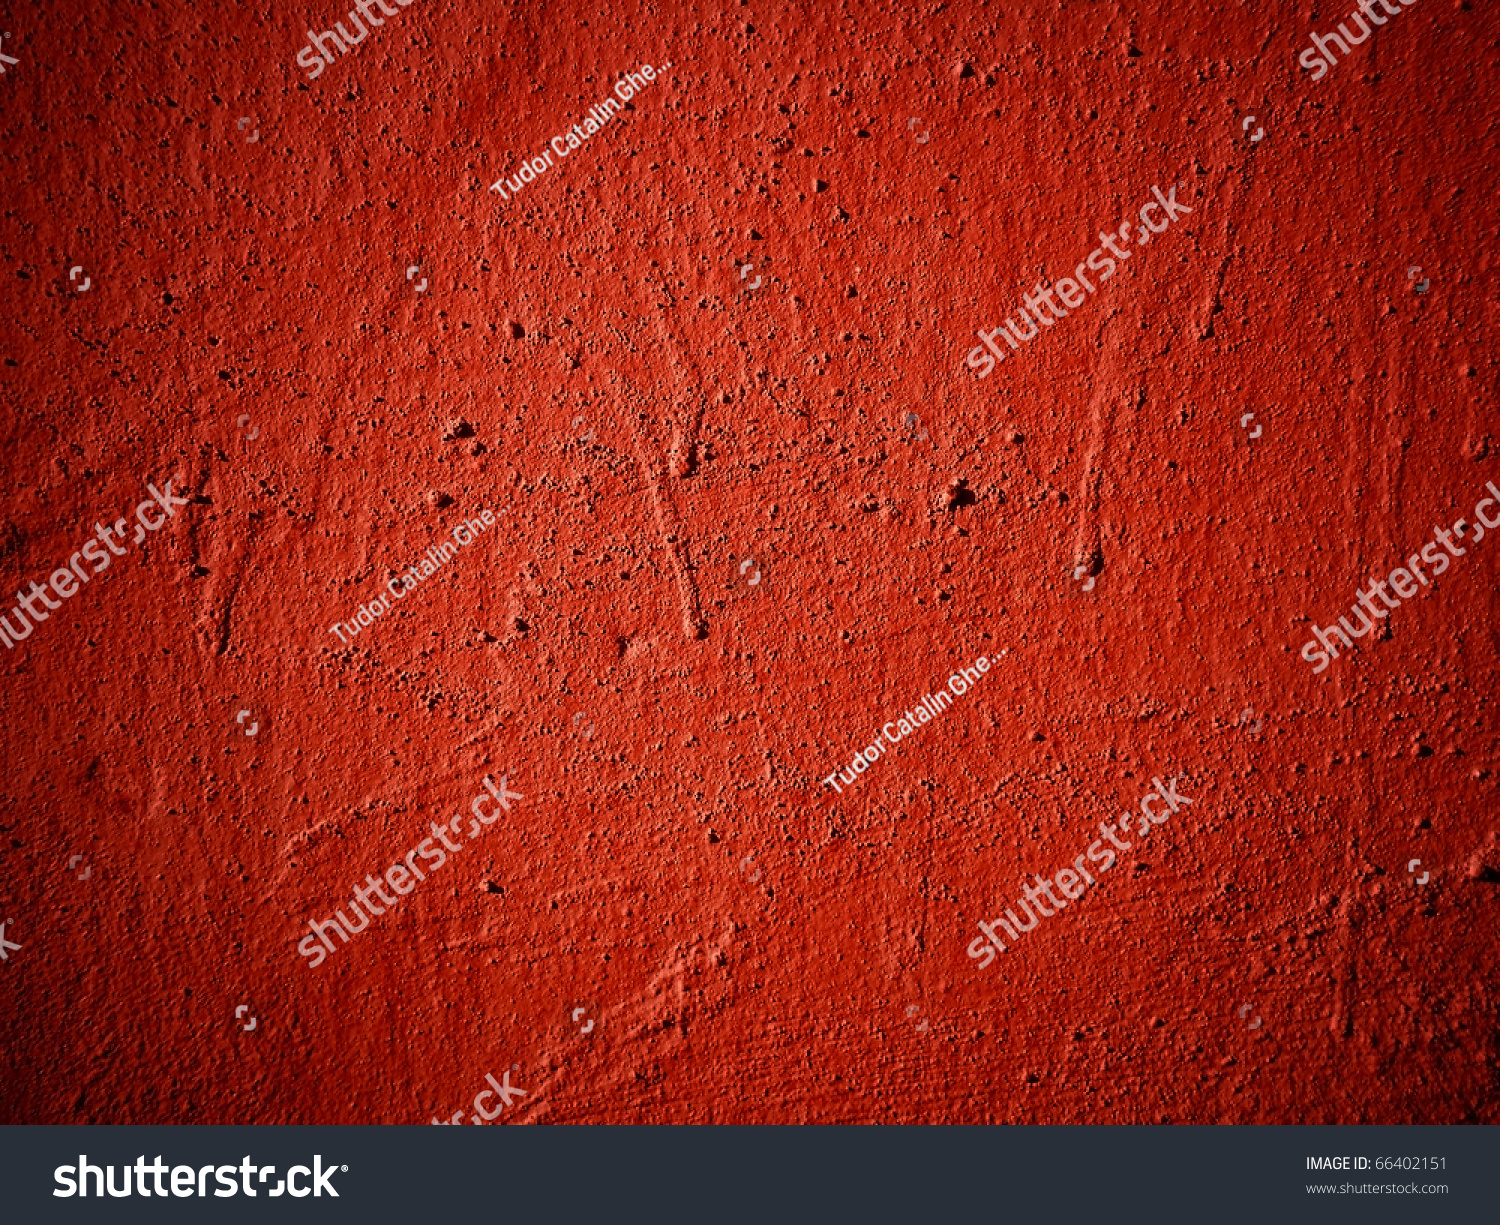 Nice Rough Red Background Stock Photo 66402151 : Shutterstock